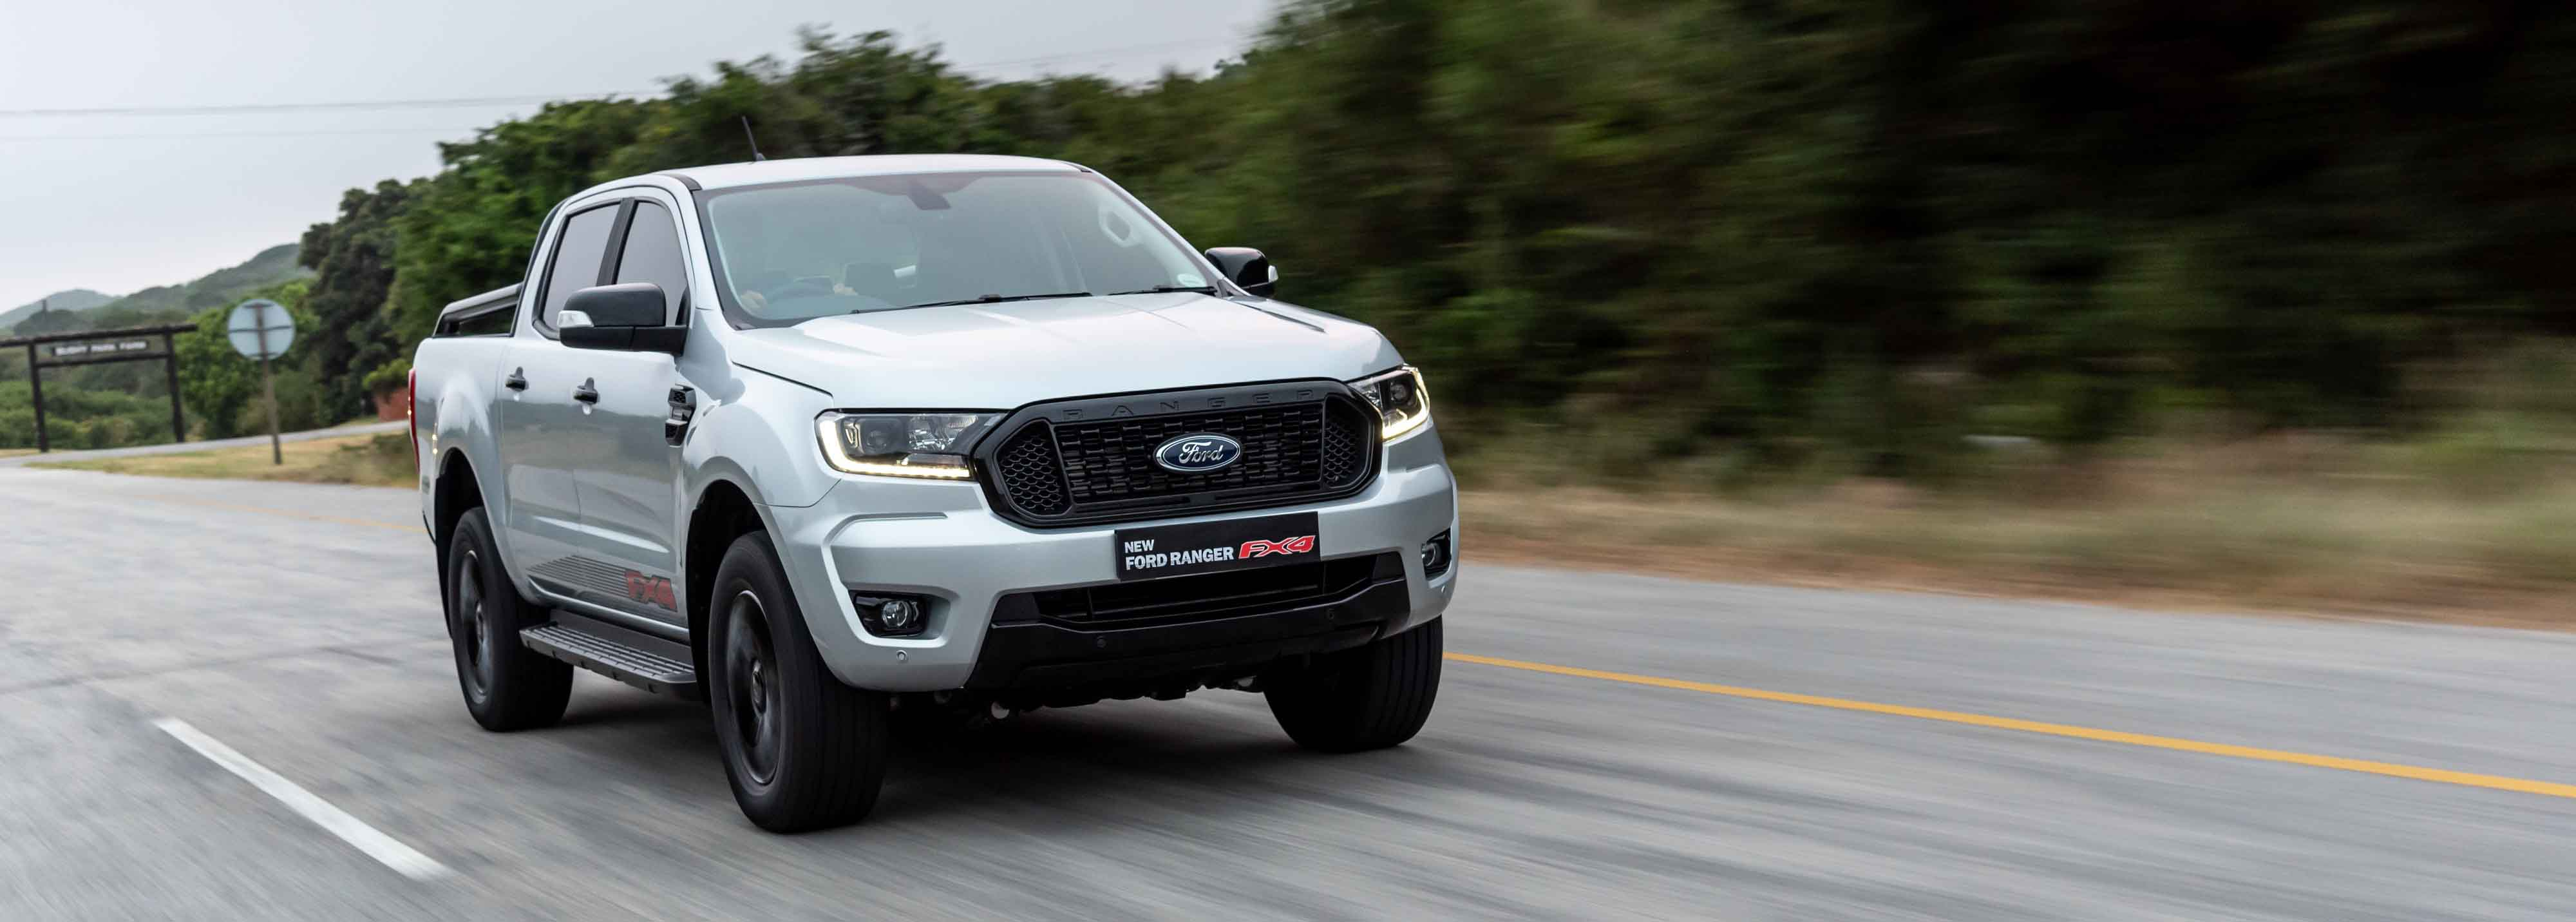 Ford expands Ranger offering with the Ranger FX4